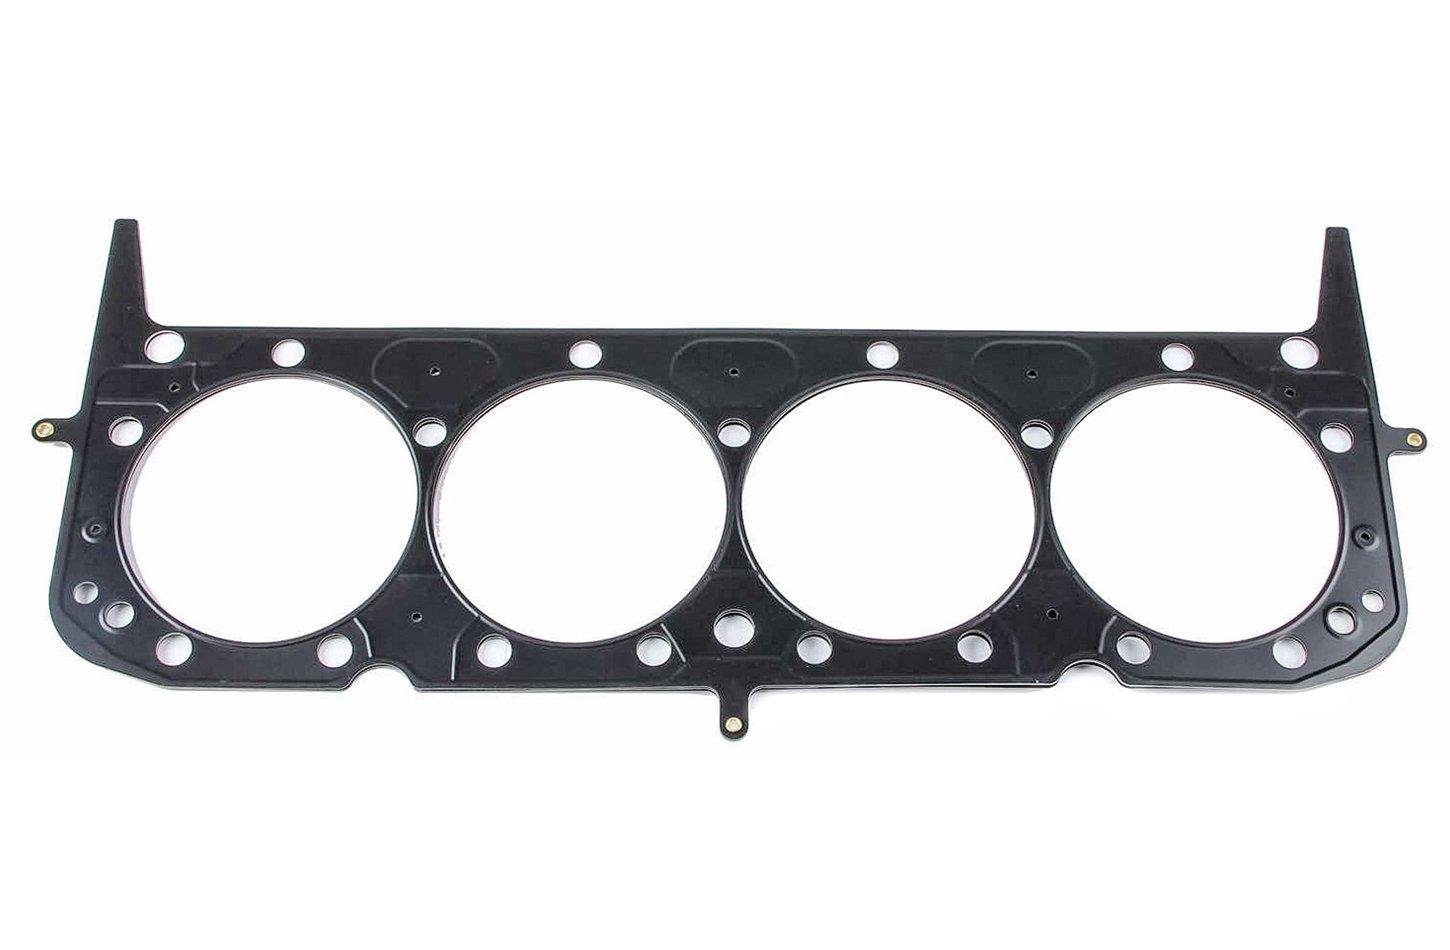 Cometic Gasket C5483-040 MLS .040 Thickness 4.155 Head Gasket for Small Block Ford SVO